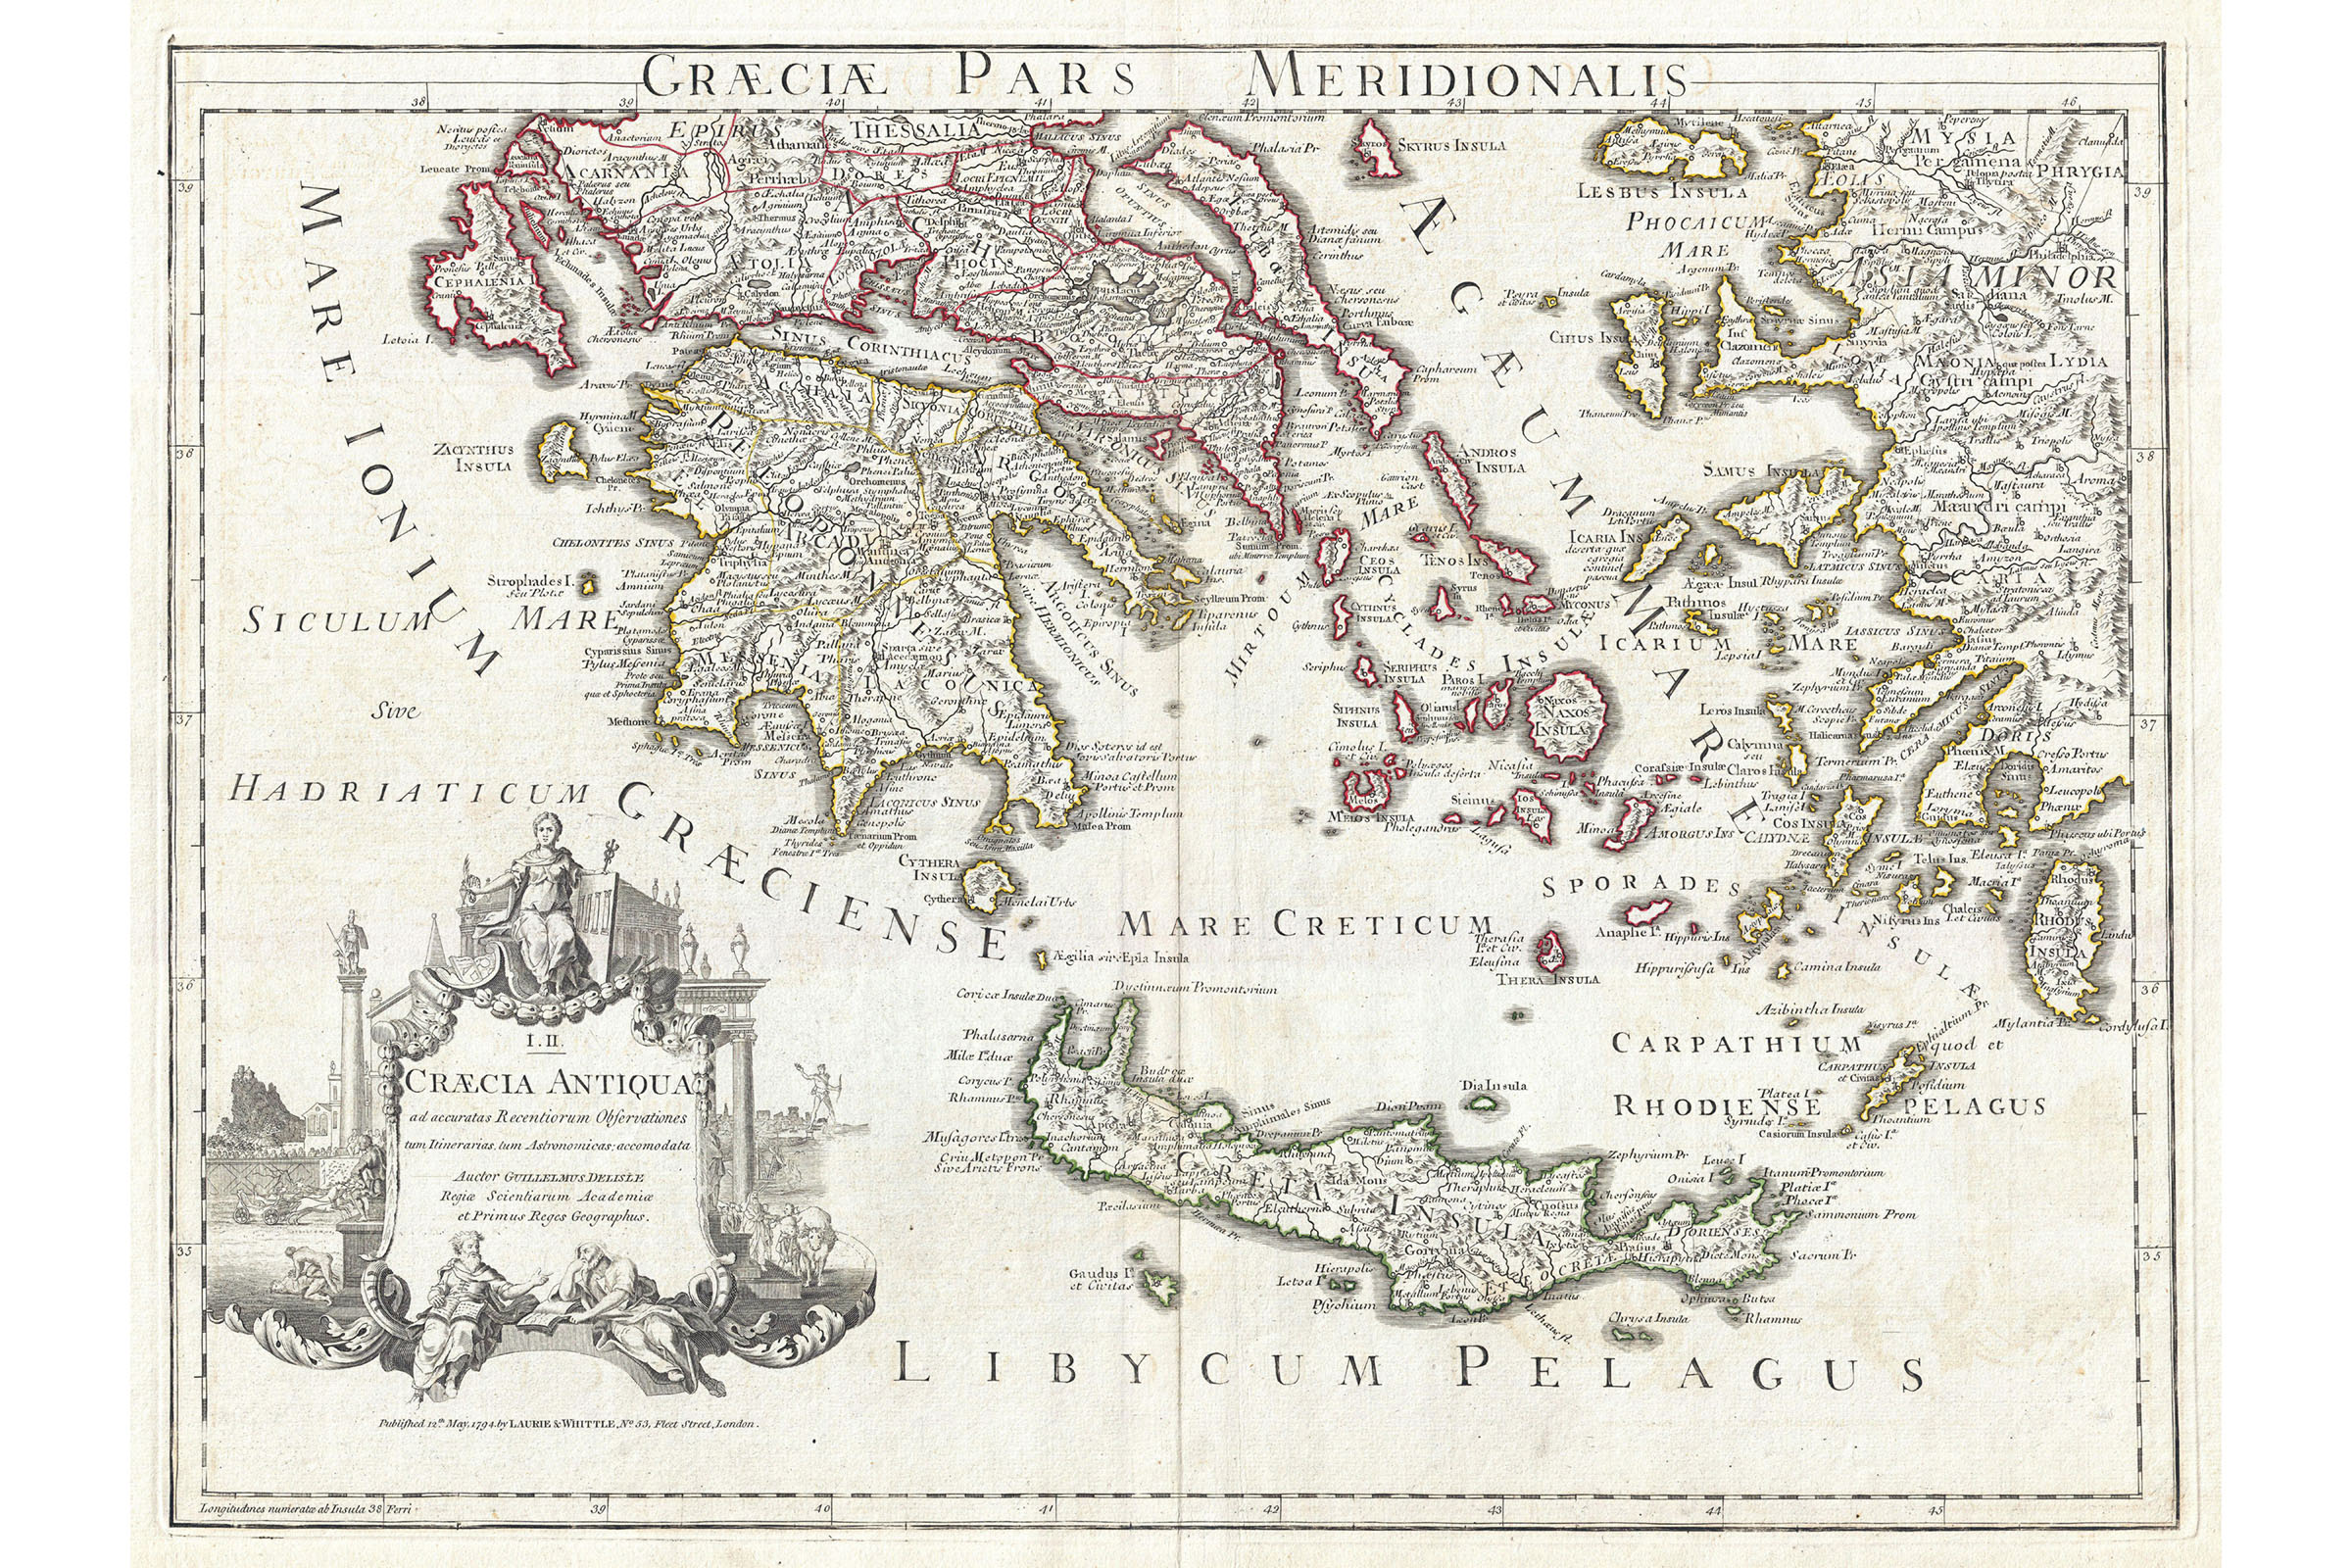 Details About Southern Ancient Greece Greek Isles Crete Antique Map 1794